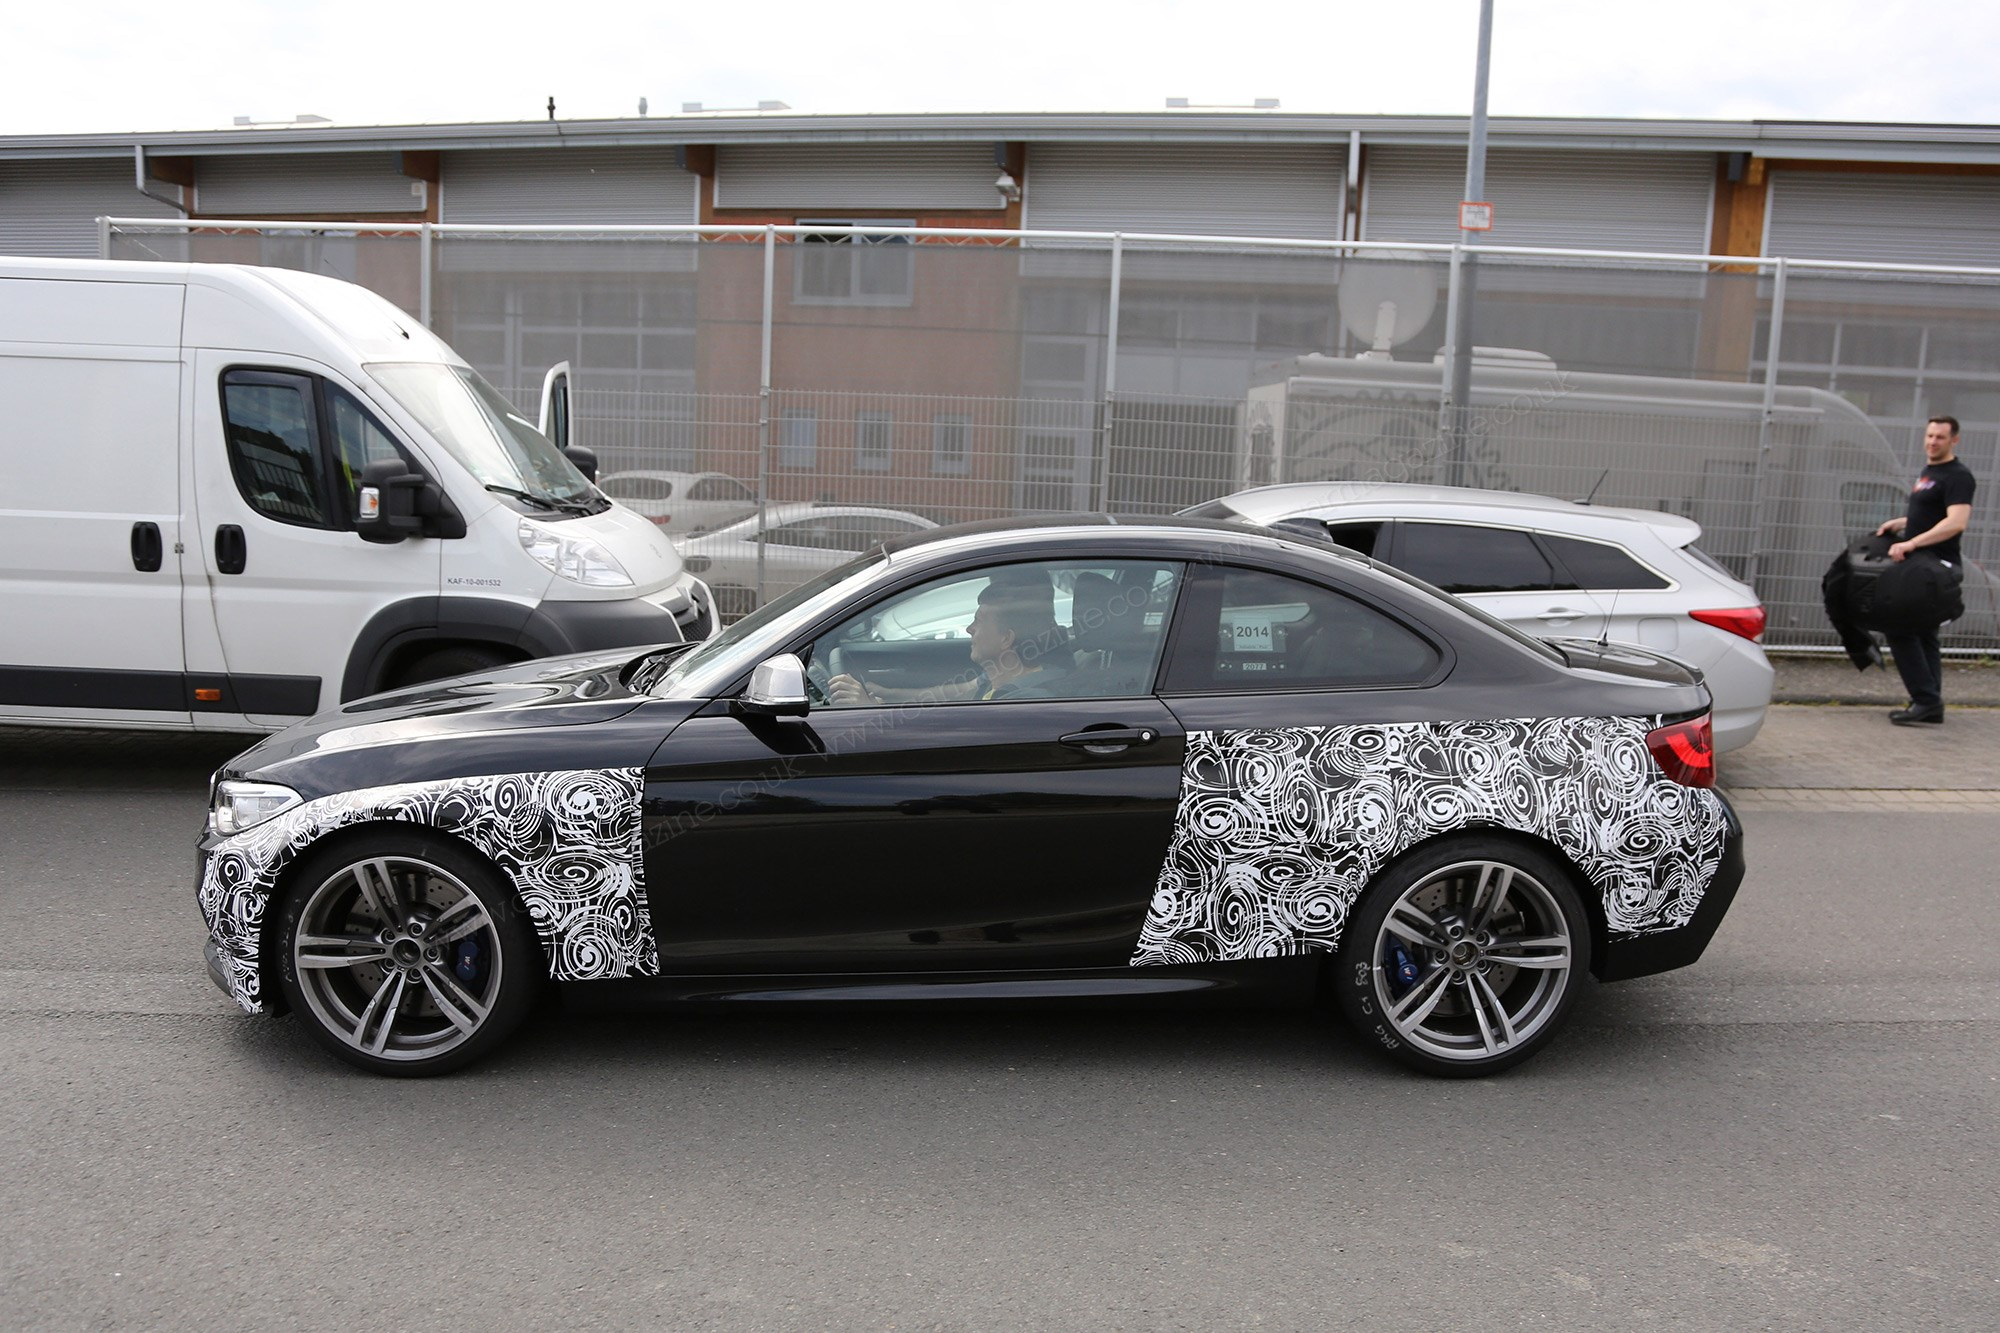 BMW Was An Early Pioneer Of The Swirly Whirly Black And White Look For Trompe Loeiul Effect